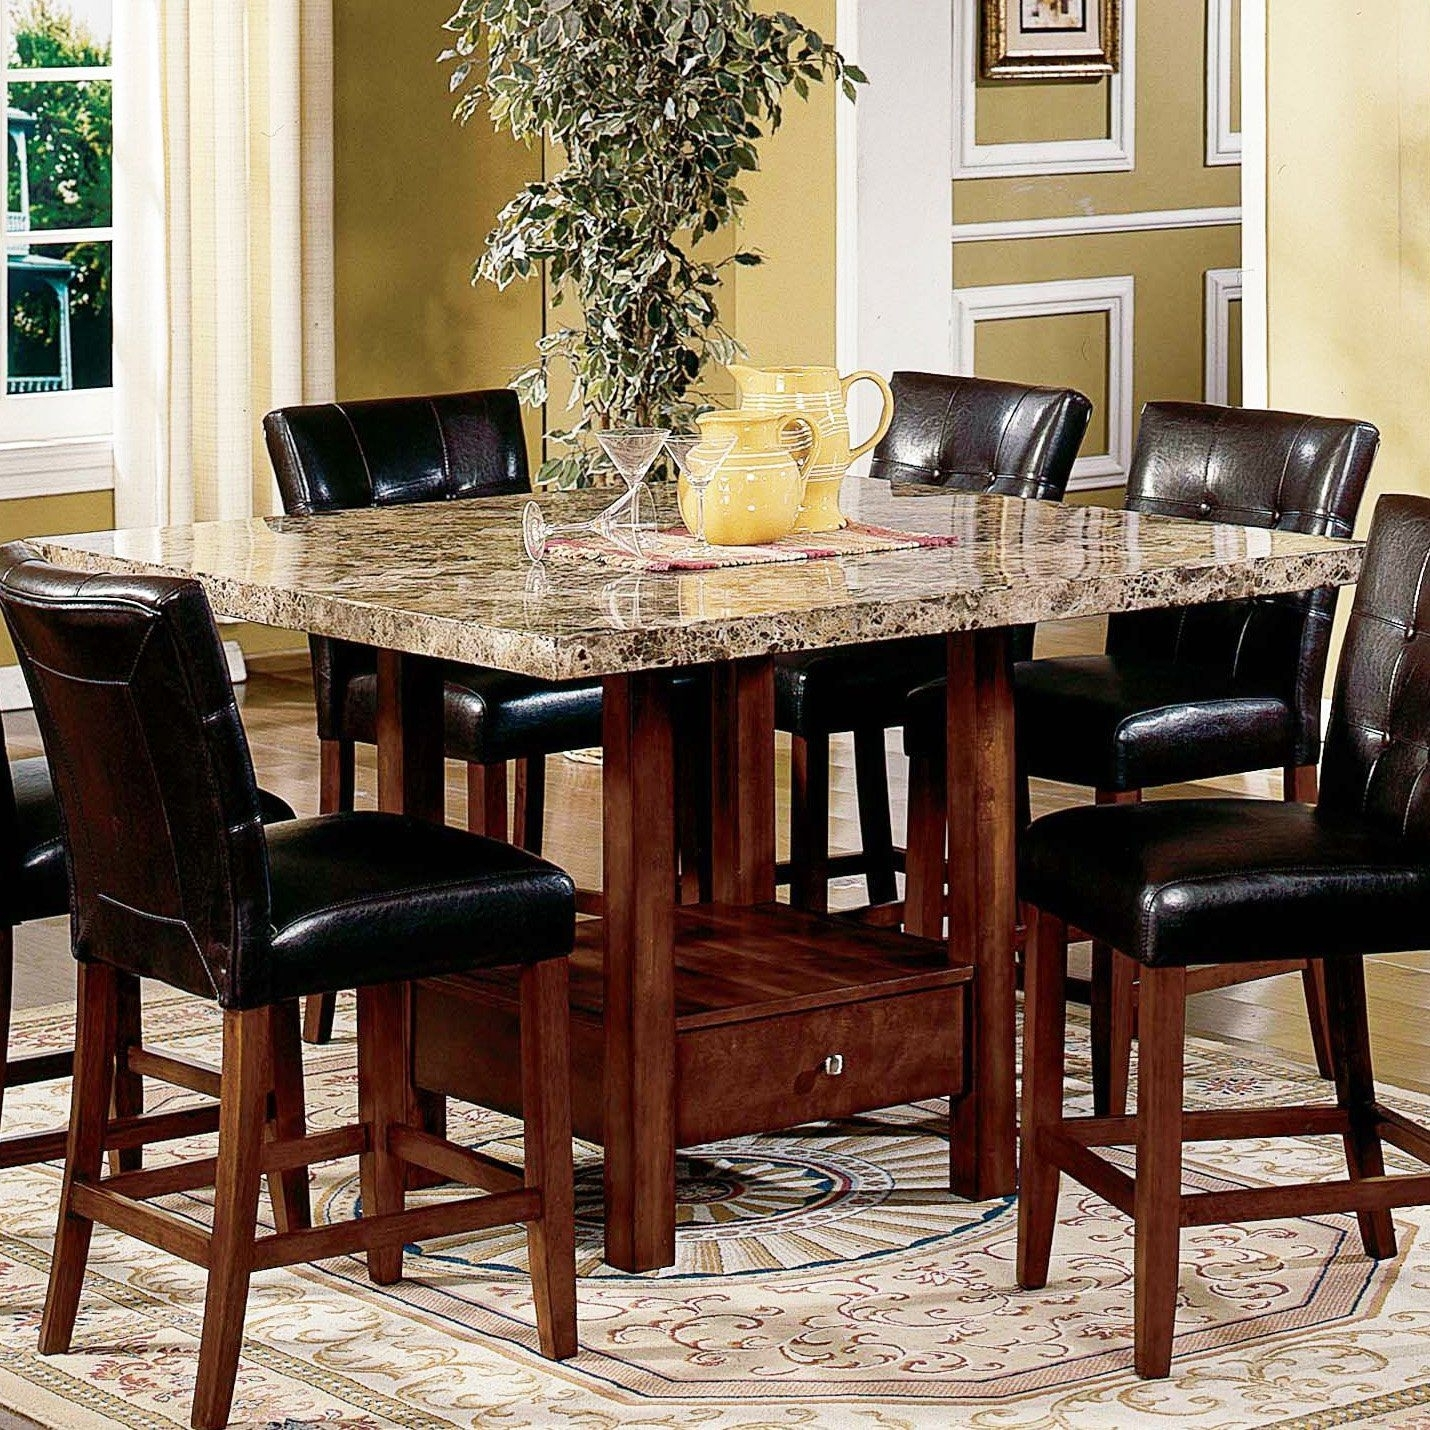 Have To Have It. Steve Silver Montibello Marble Top Counter Height Pertaining To Most Current Palazzo 7 Piece Dining Sets With Pearson White Side Chairs (Photo 13 of 20)